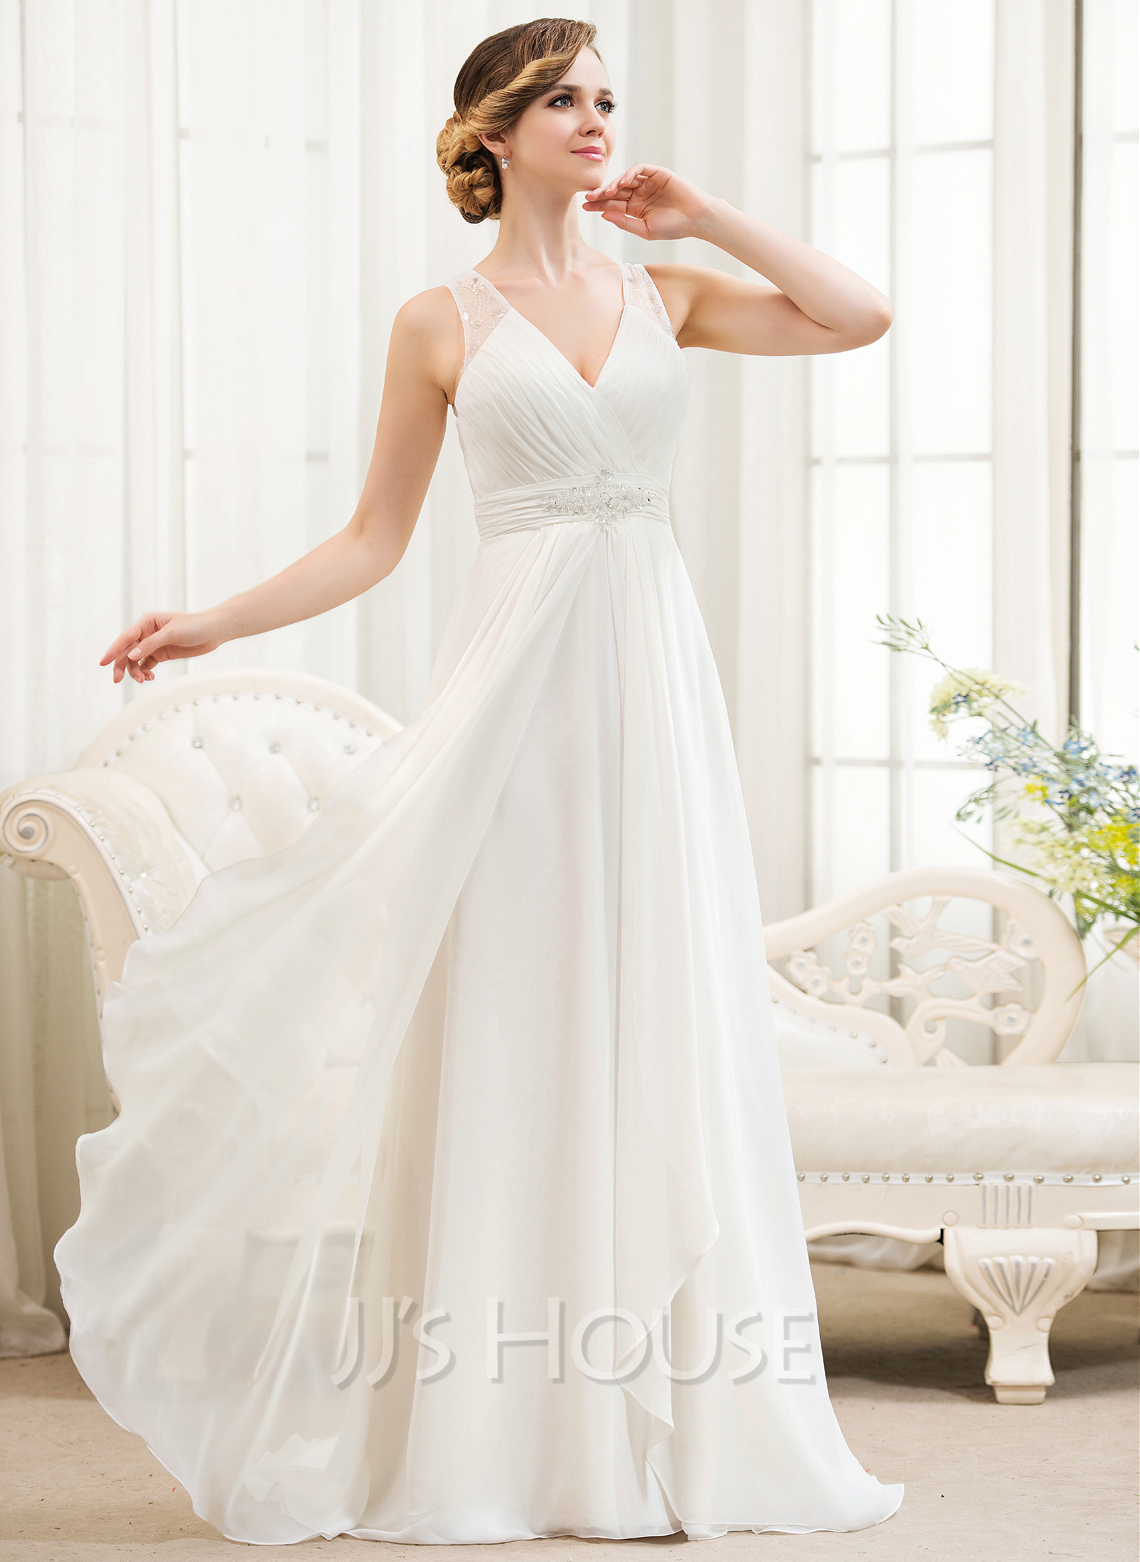 48adbccedb5d3 A-Line/Princess V-neck Sweep Train Chiffon Wedding Dress With Beading  Sequins. Loading zoom